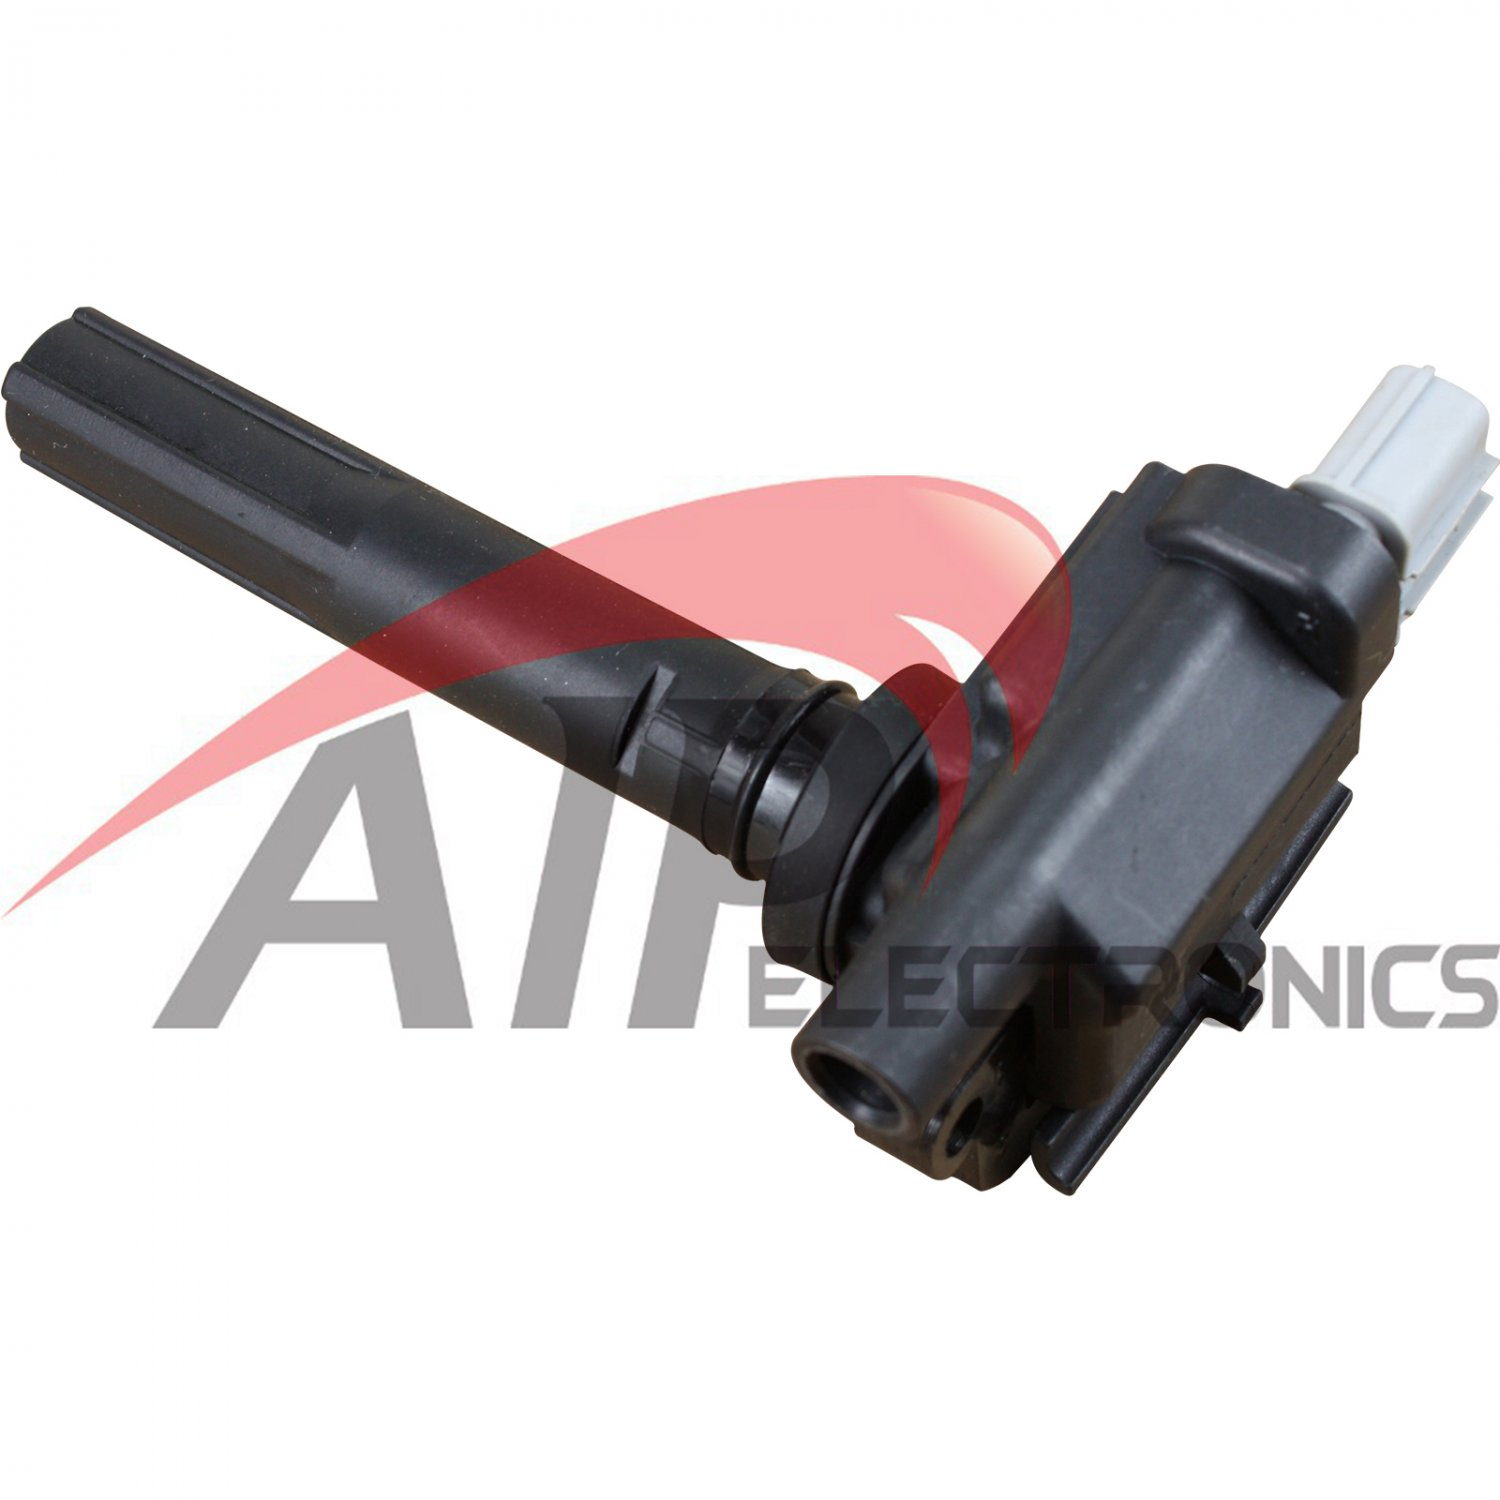 Brand New Ignition Coil Pack / Pencil / Coil on Plug 1.3L 1.6L 4CYL Complete Oem Fit C268